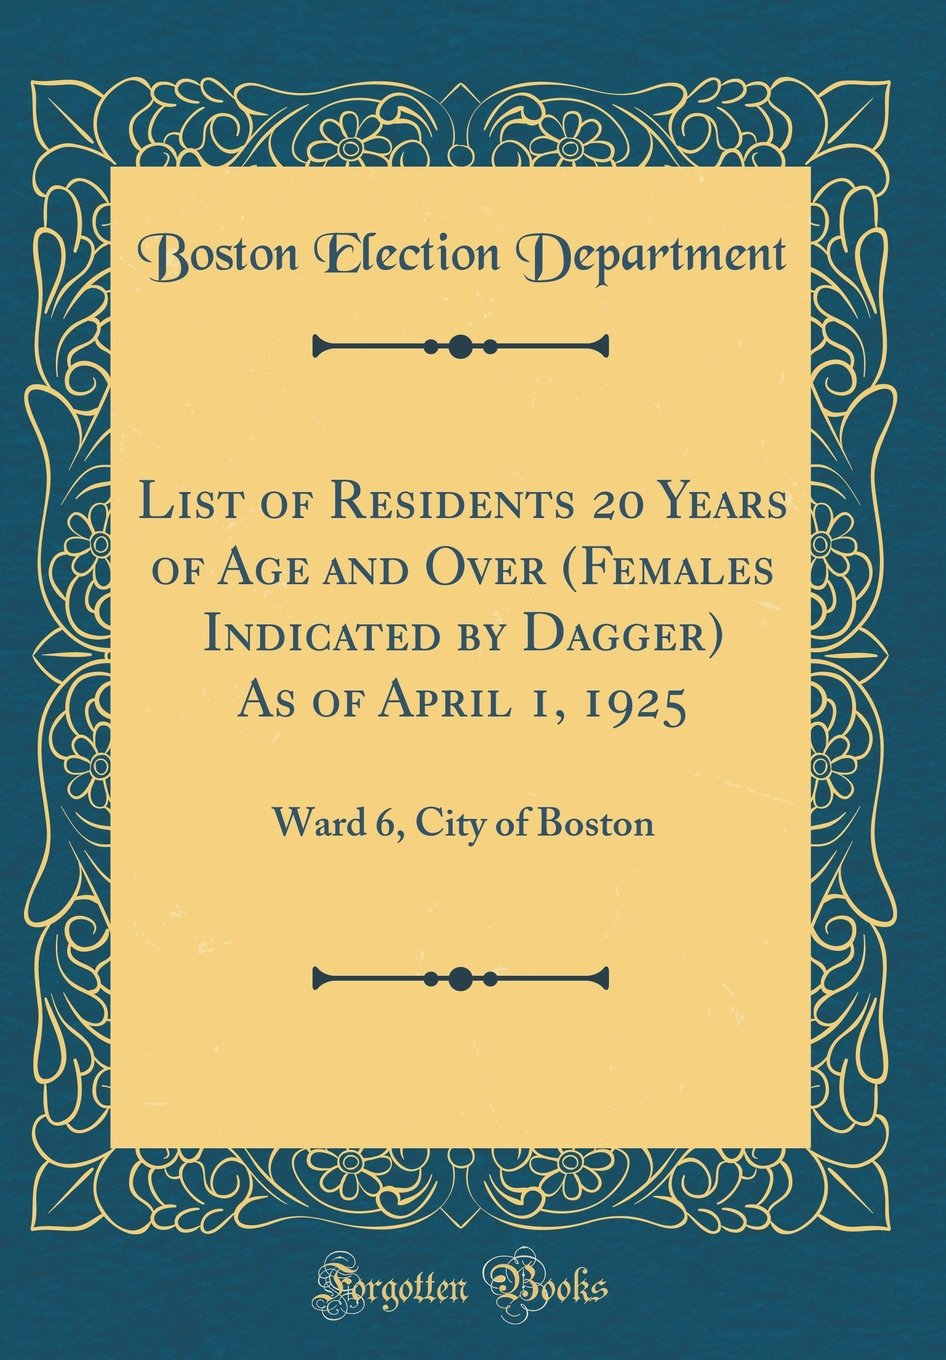 Download List of Residents 20 Years of Age and Over (Females Indicated by Dagger) as of April 1, 1925: Ward 6, City of Boston (Classic Reprint) ebook